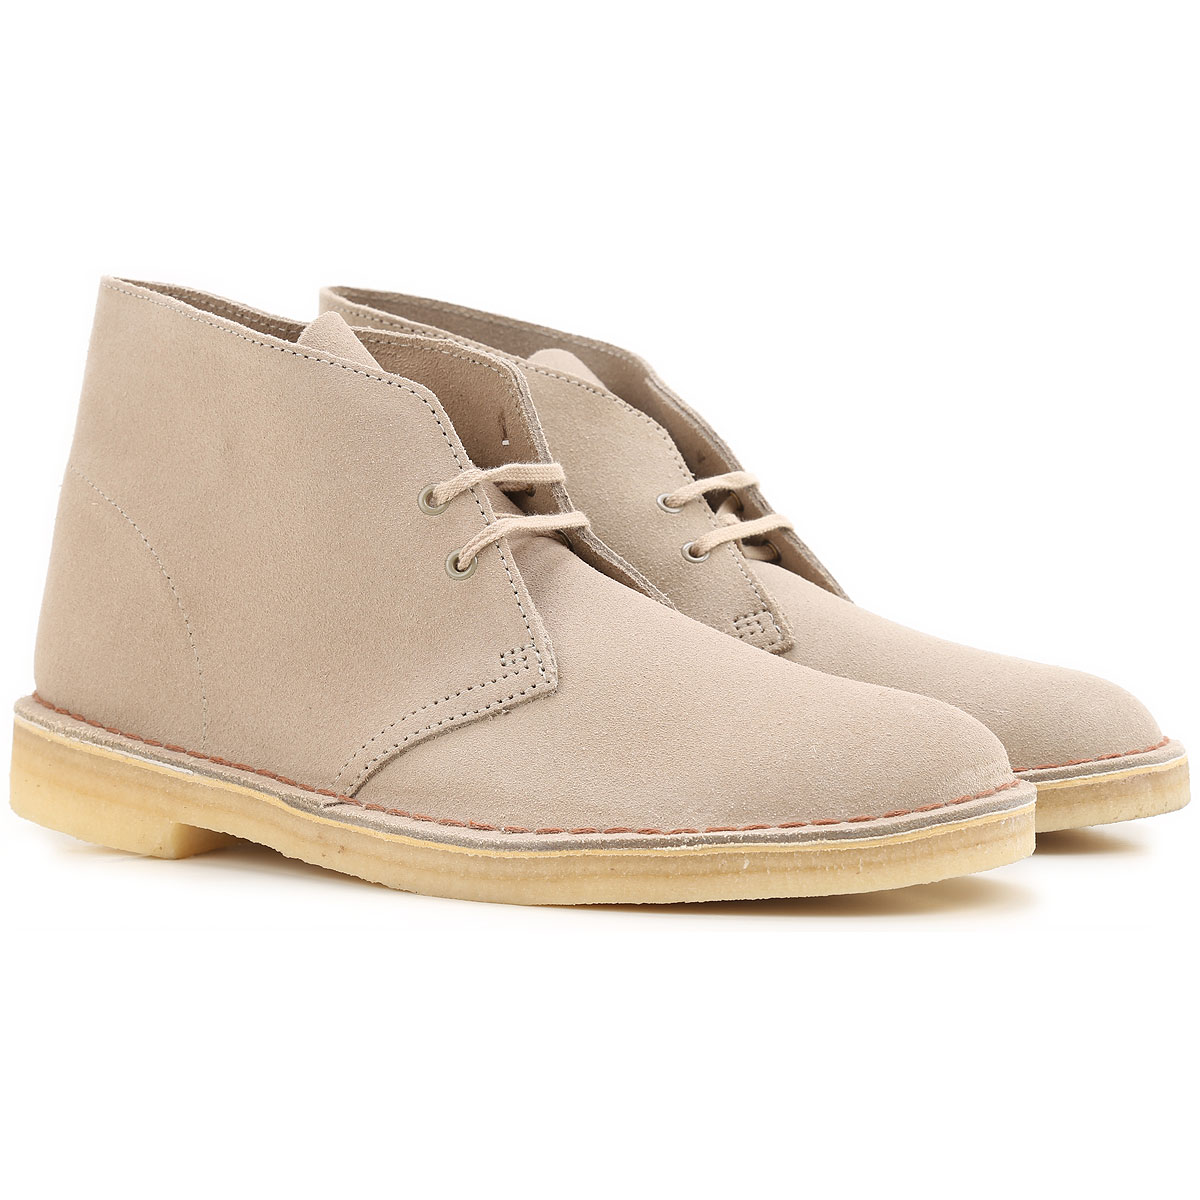 Image of Clarks Desert Boots Chukka for Men, Sand, Suede leather, 2017, 10 11 11.5 8 9 9.5